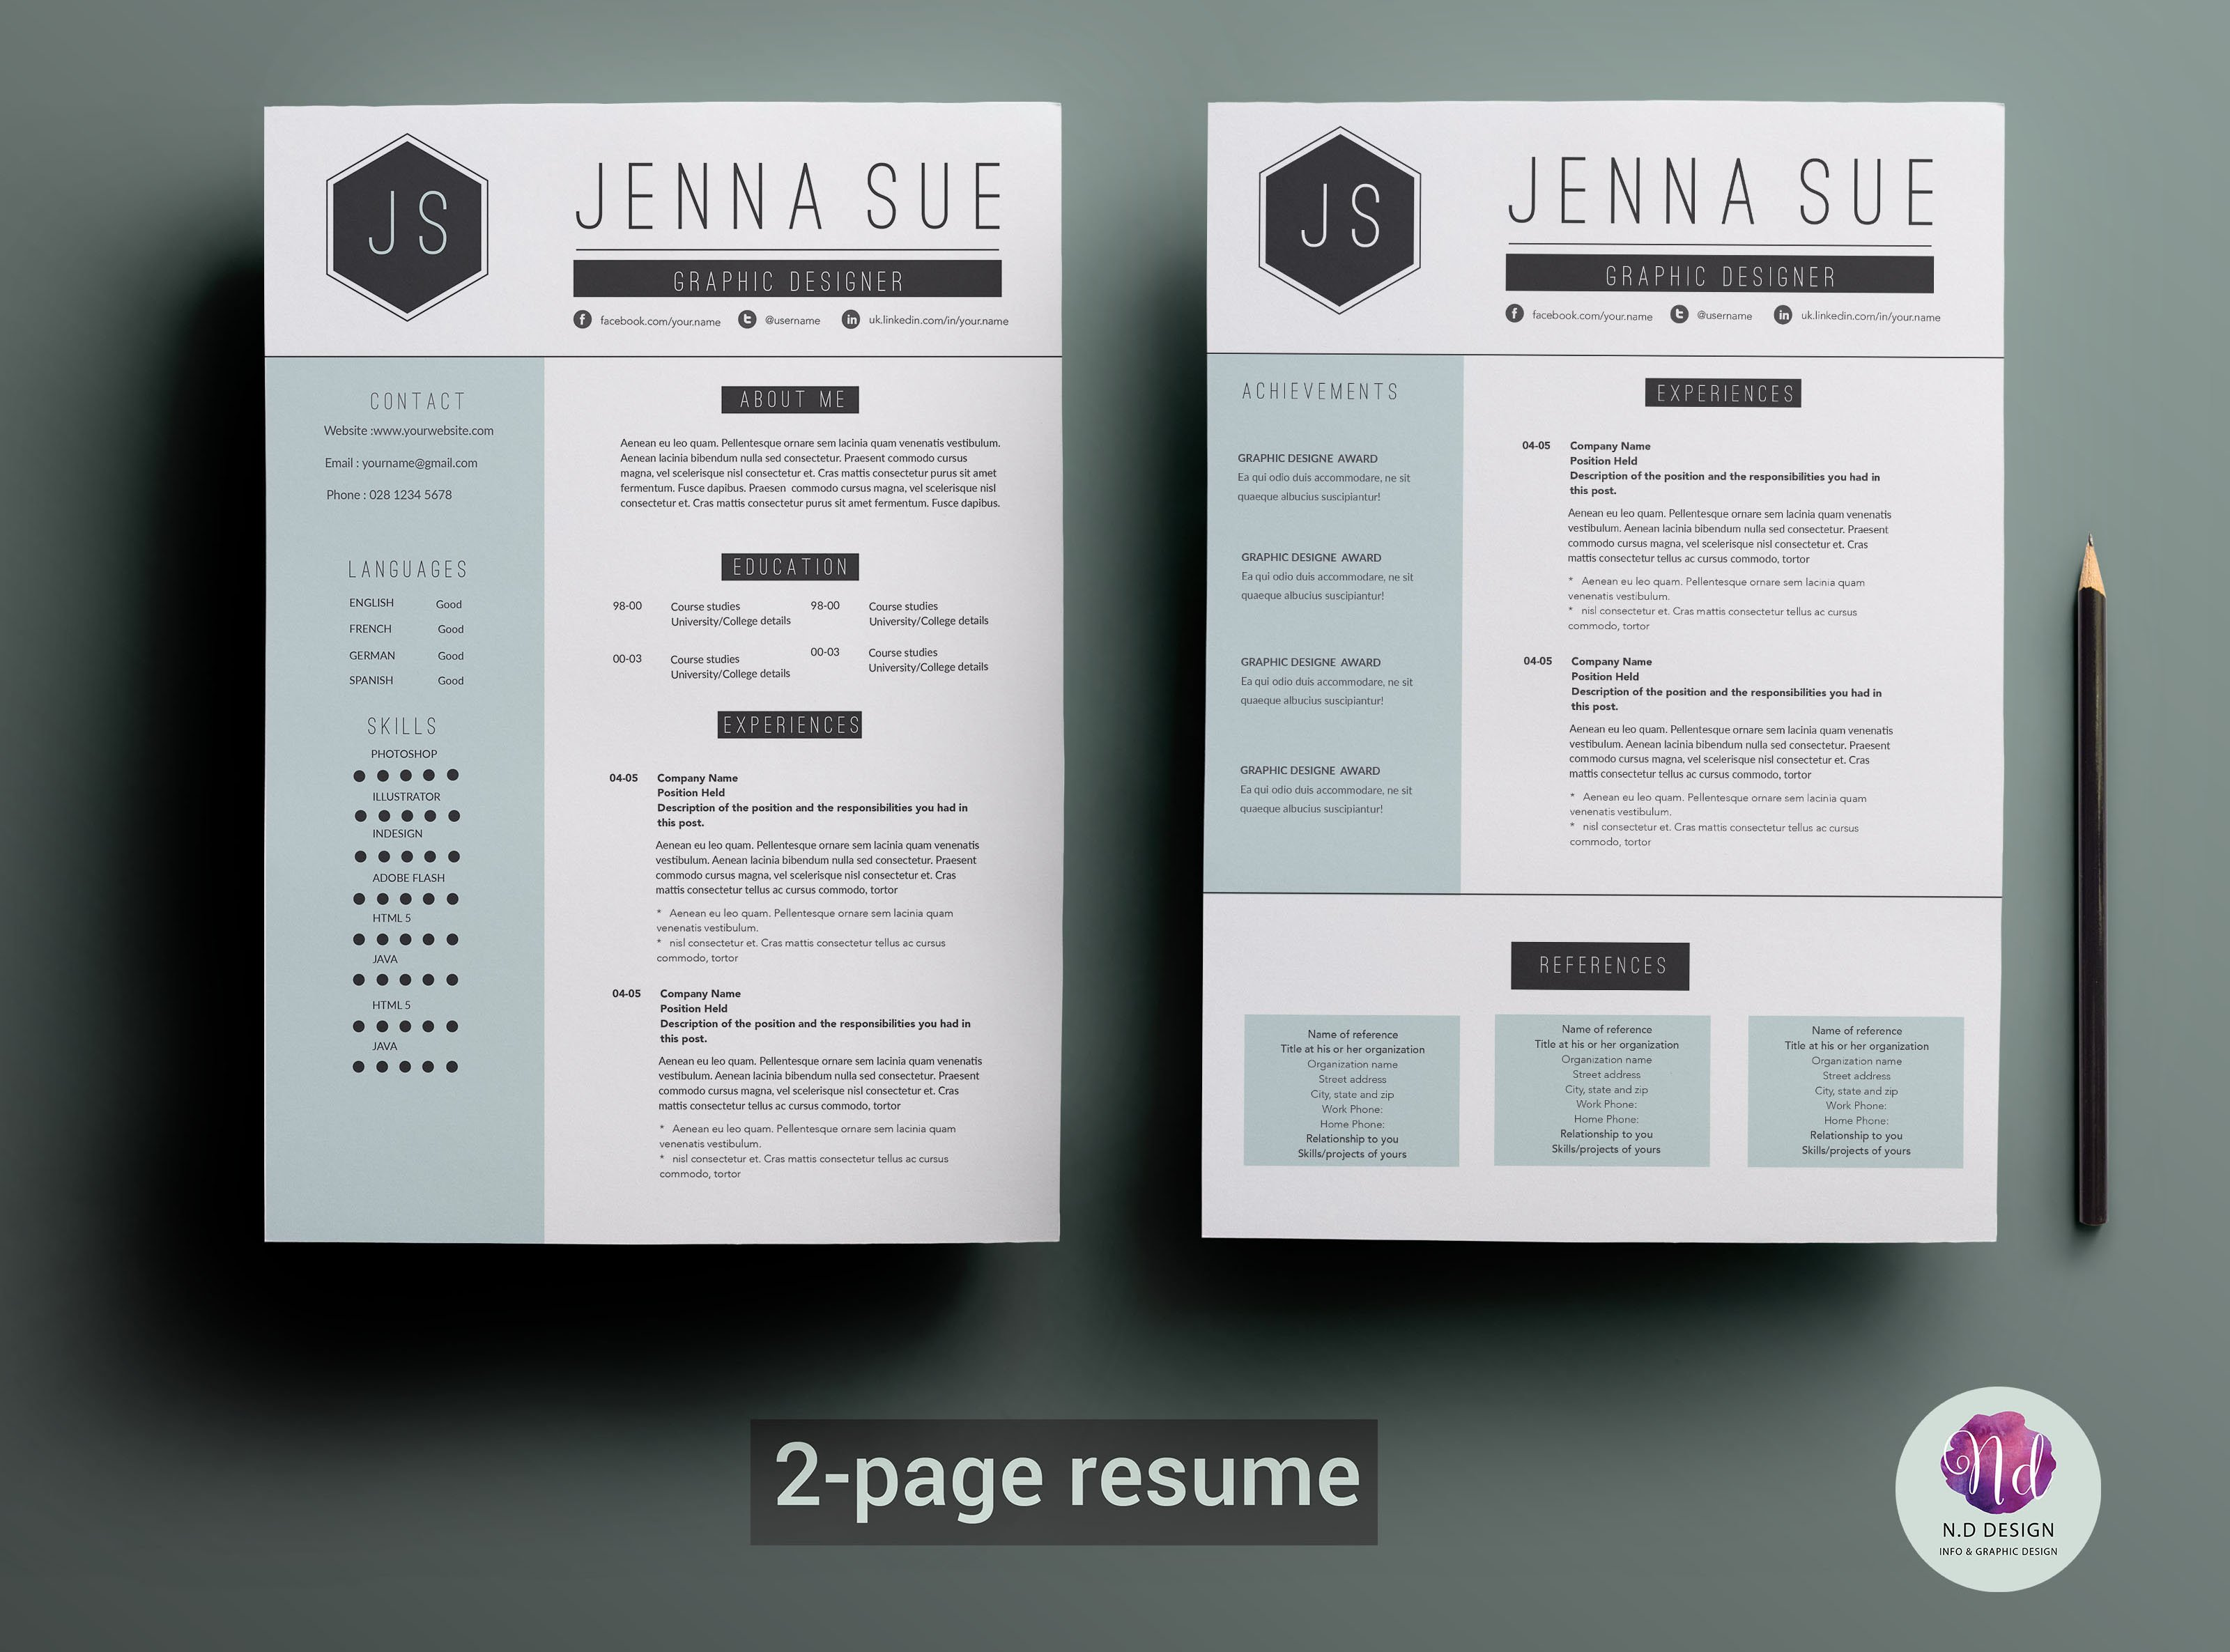 2 page resume template resume templates creative market - Awesome Resume Templates 2